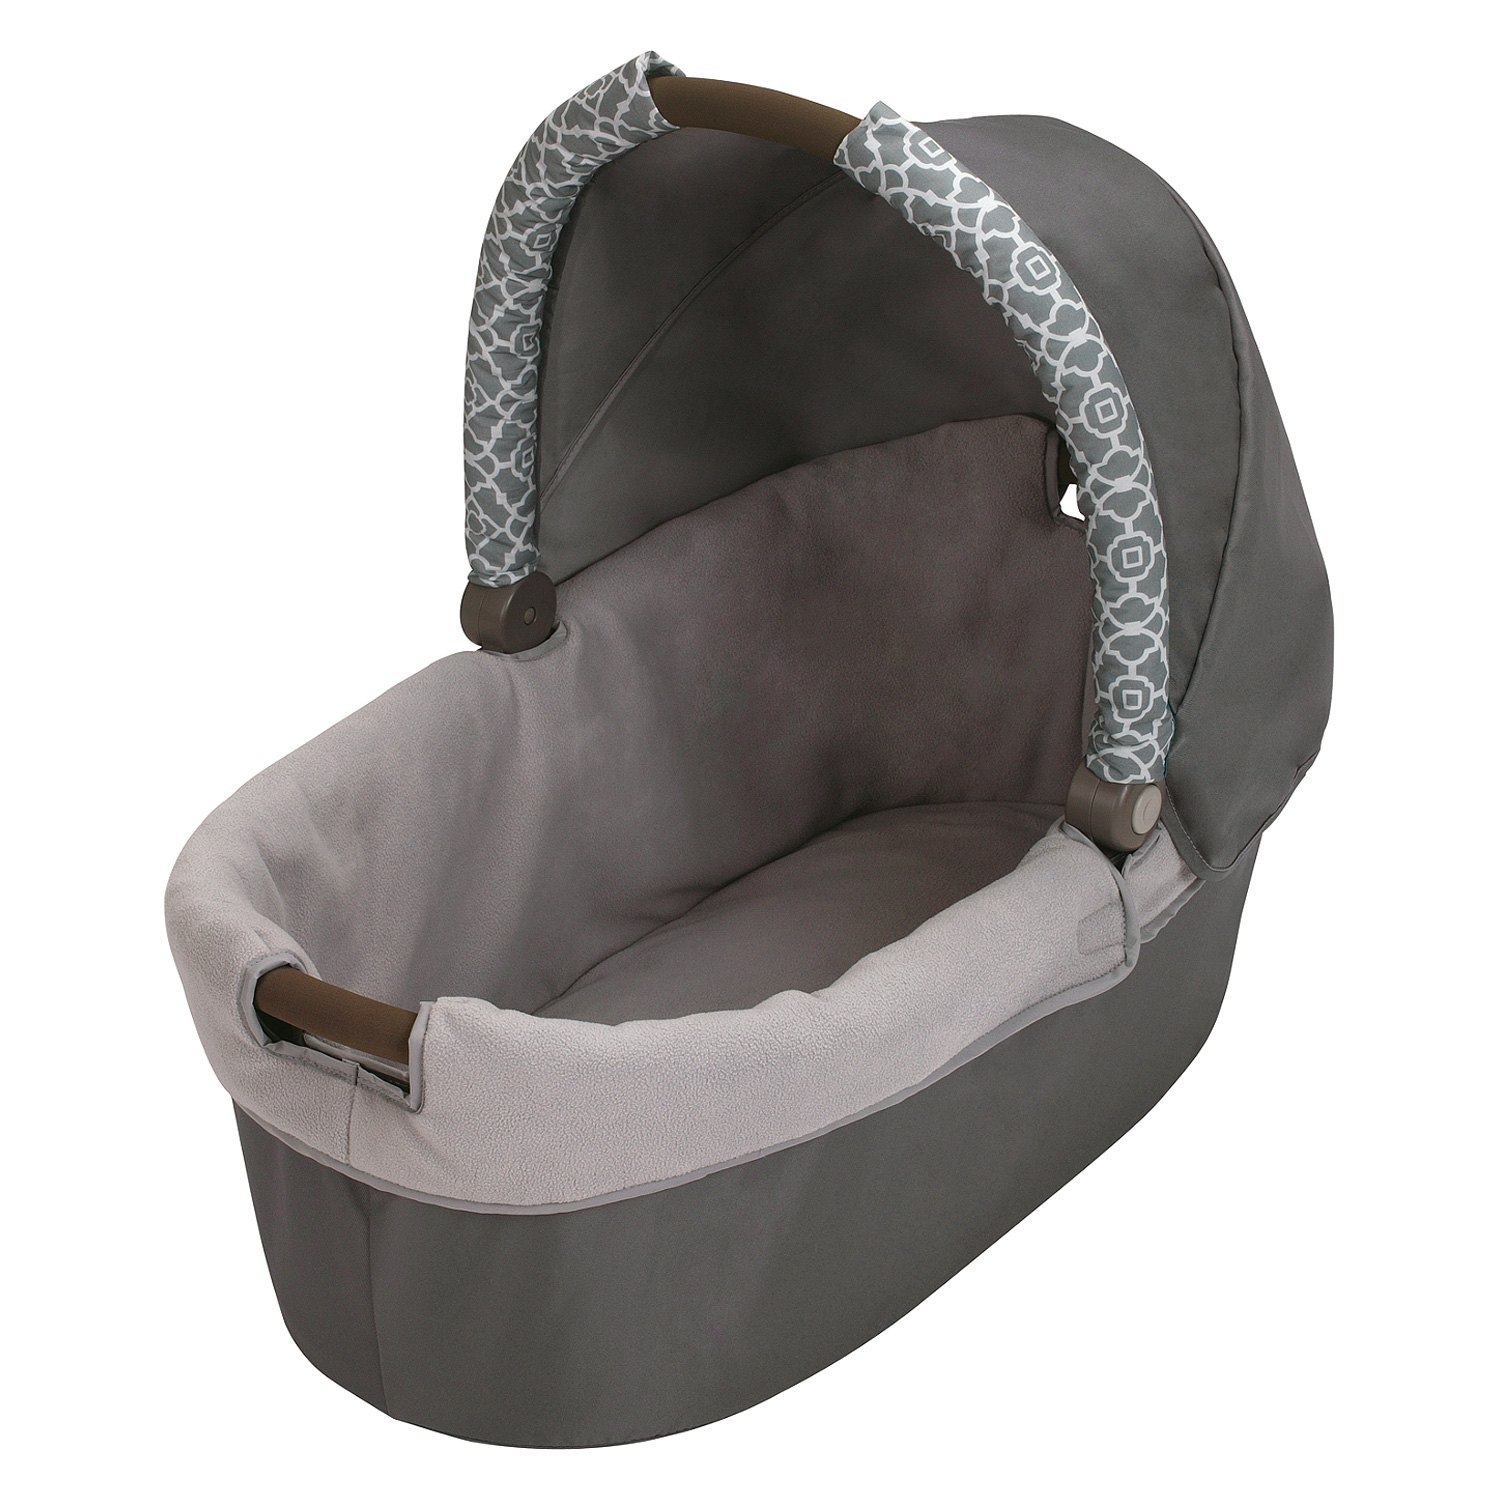 graco bedroom bassinet. baby® - day2night™ ardmore style sleep systemgraco graco bedroom bassinet